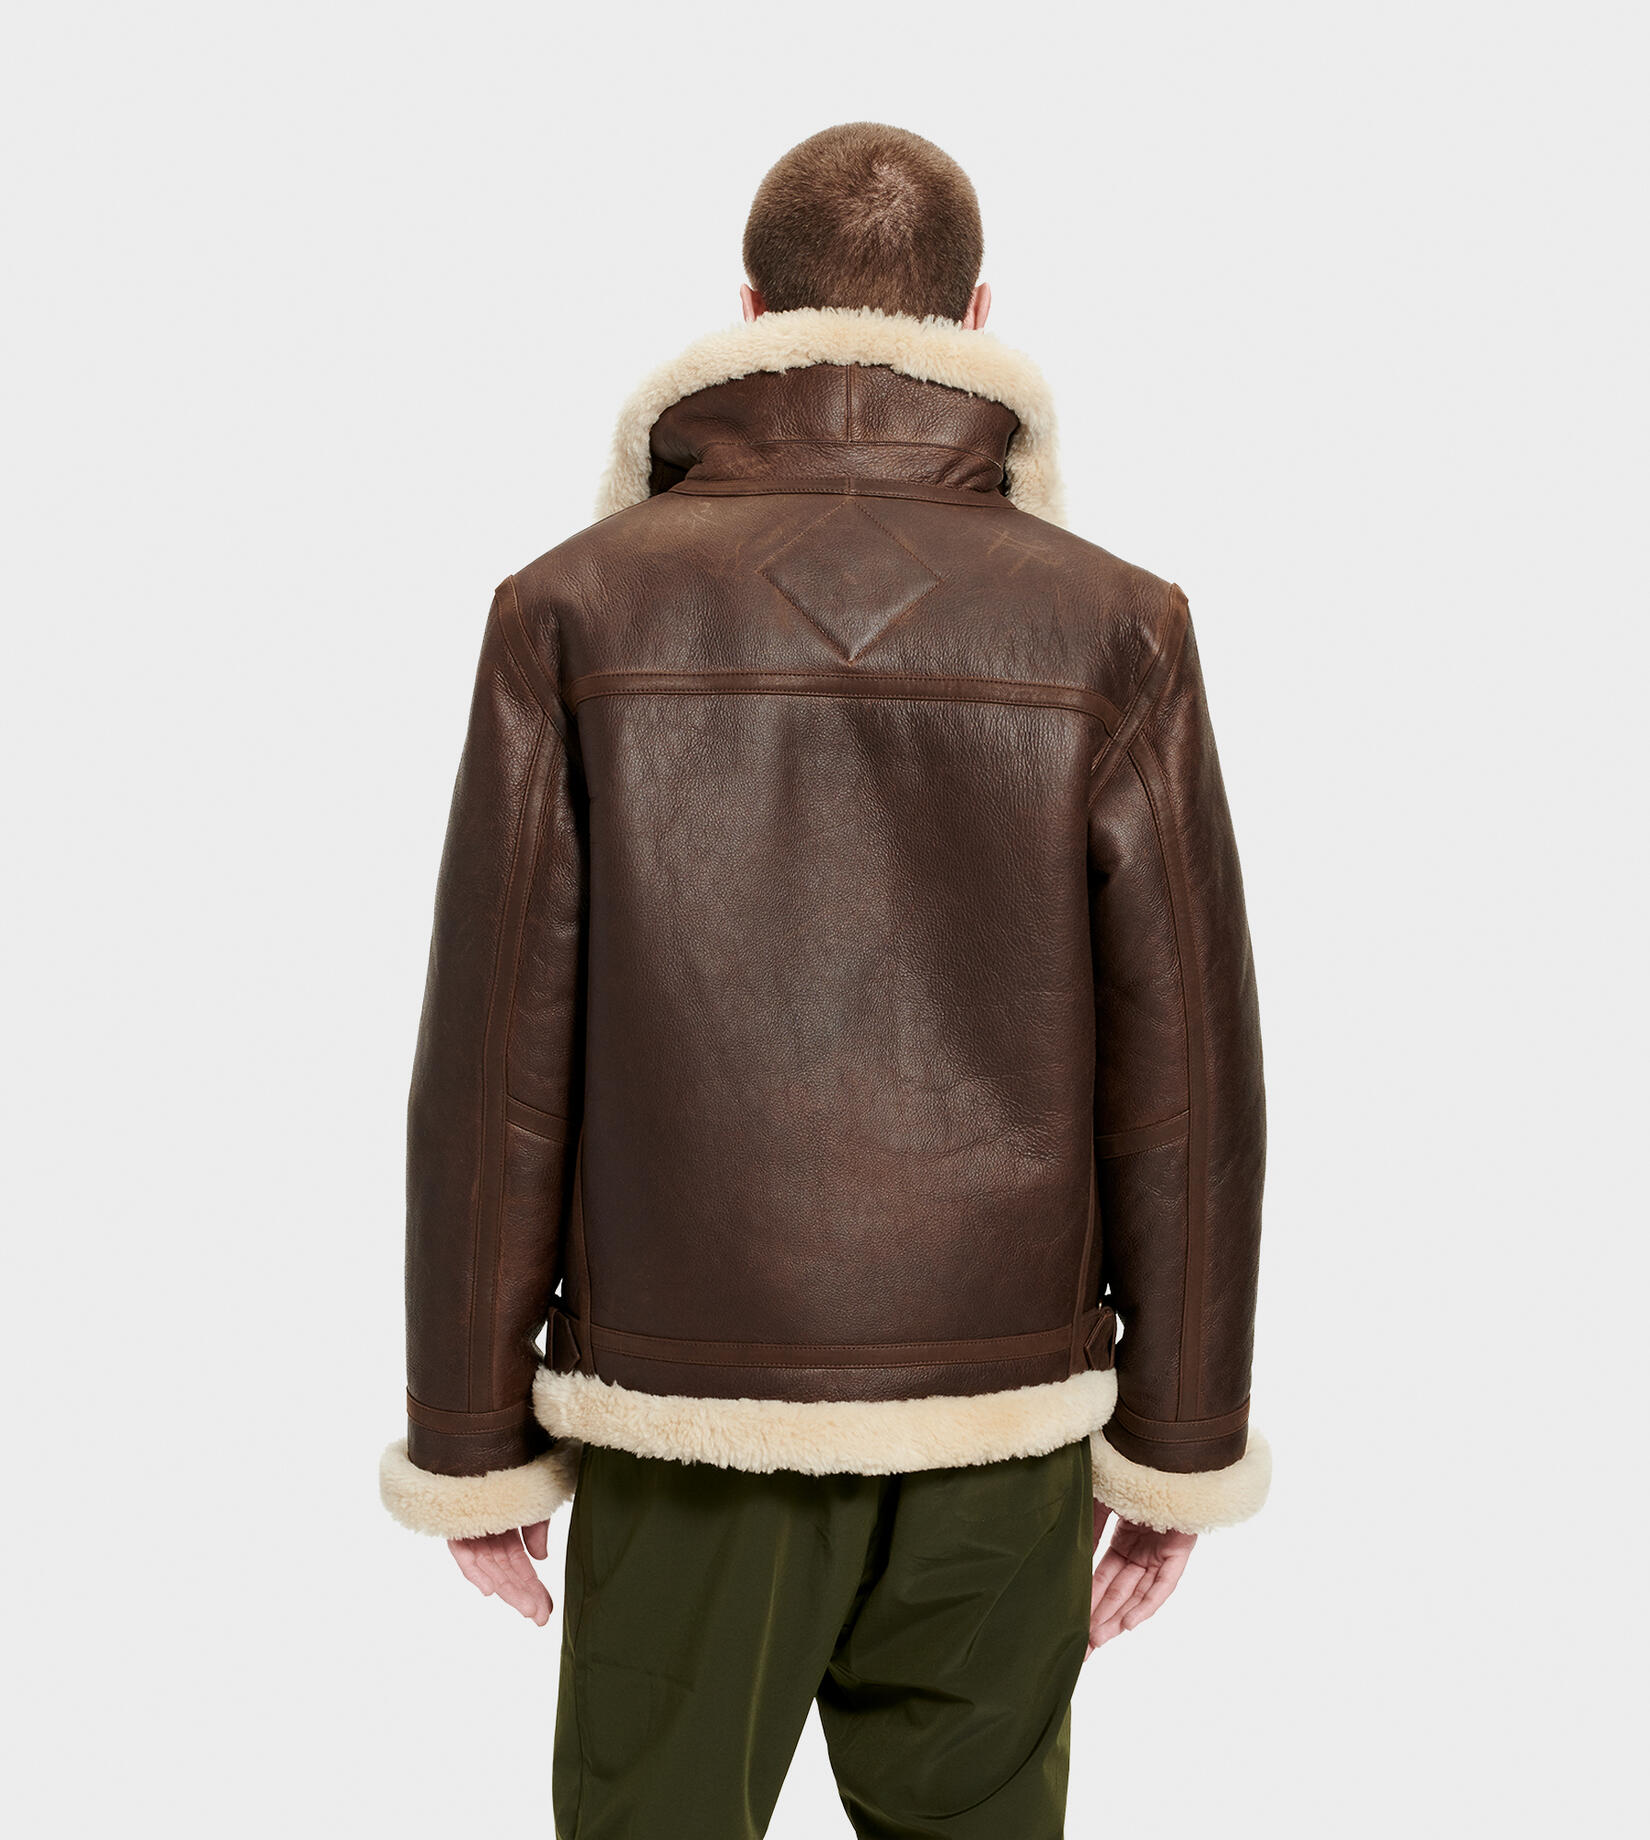 Auden Shearling Aviator Jacket